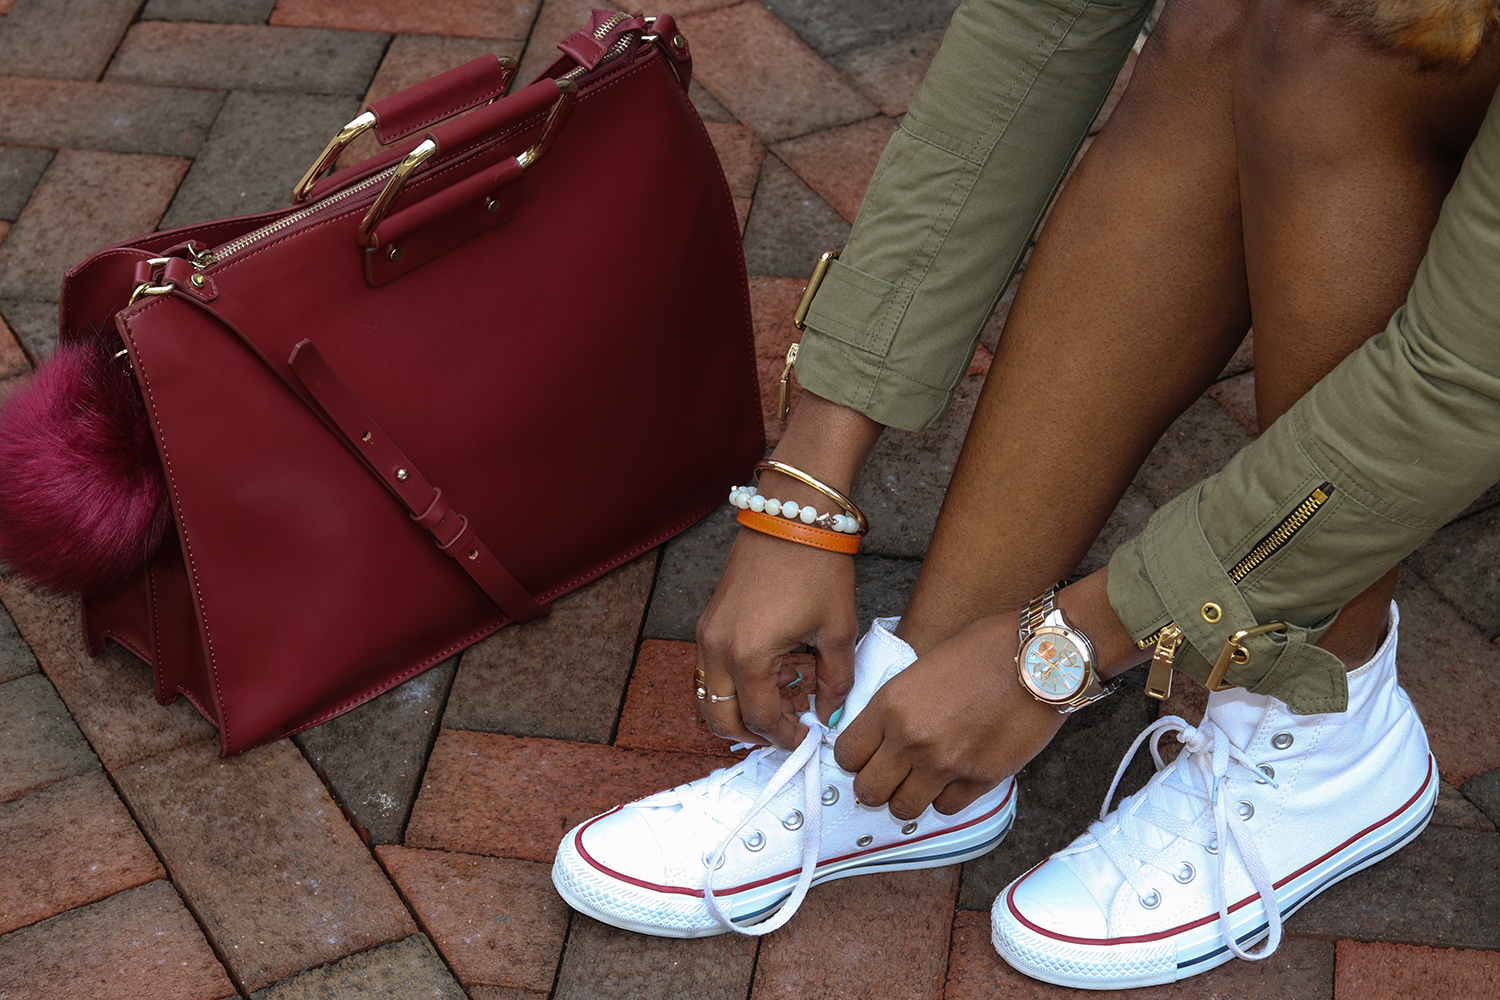 burgundy purse and converse